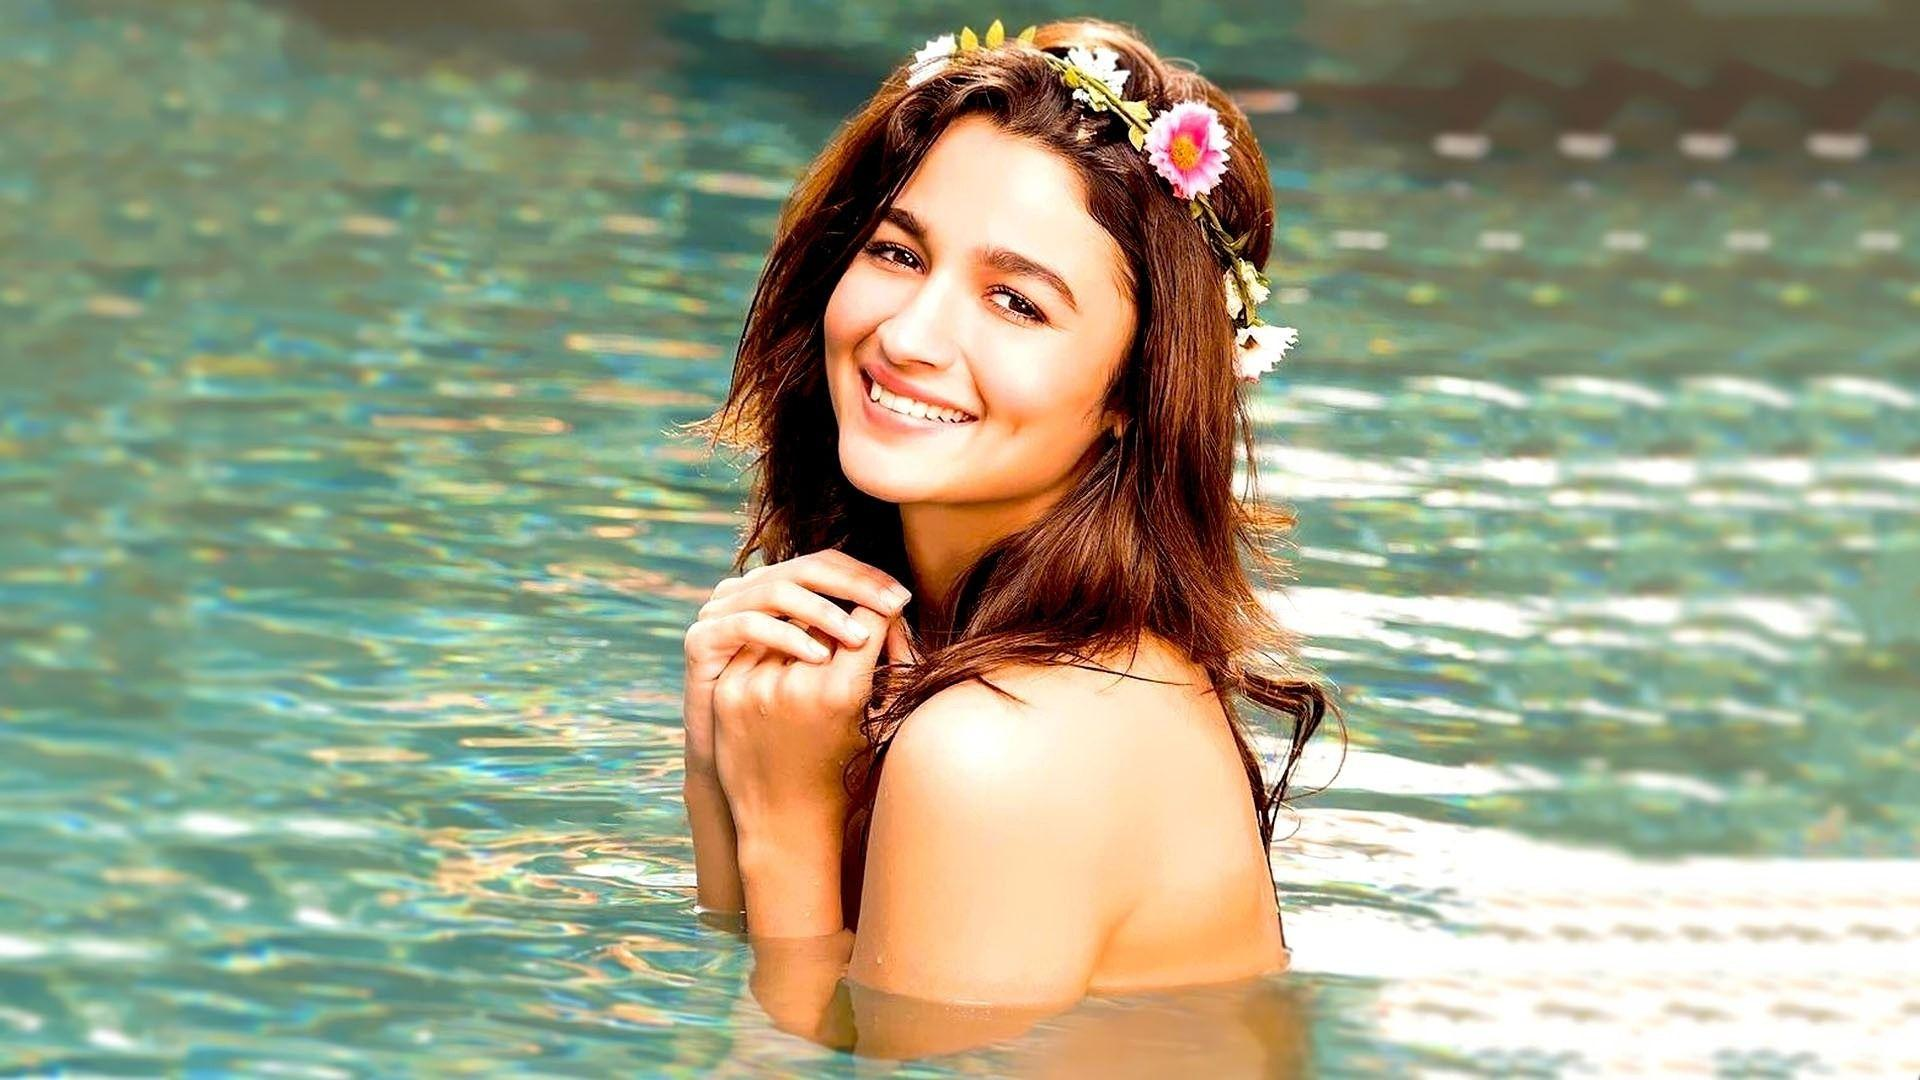 Alia Bhatt Full HD 1080p Image Photos Pics Wallpapers